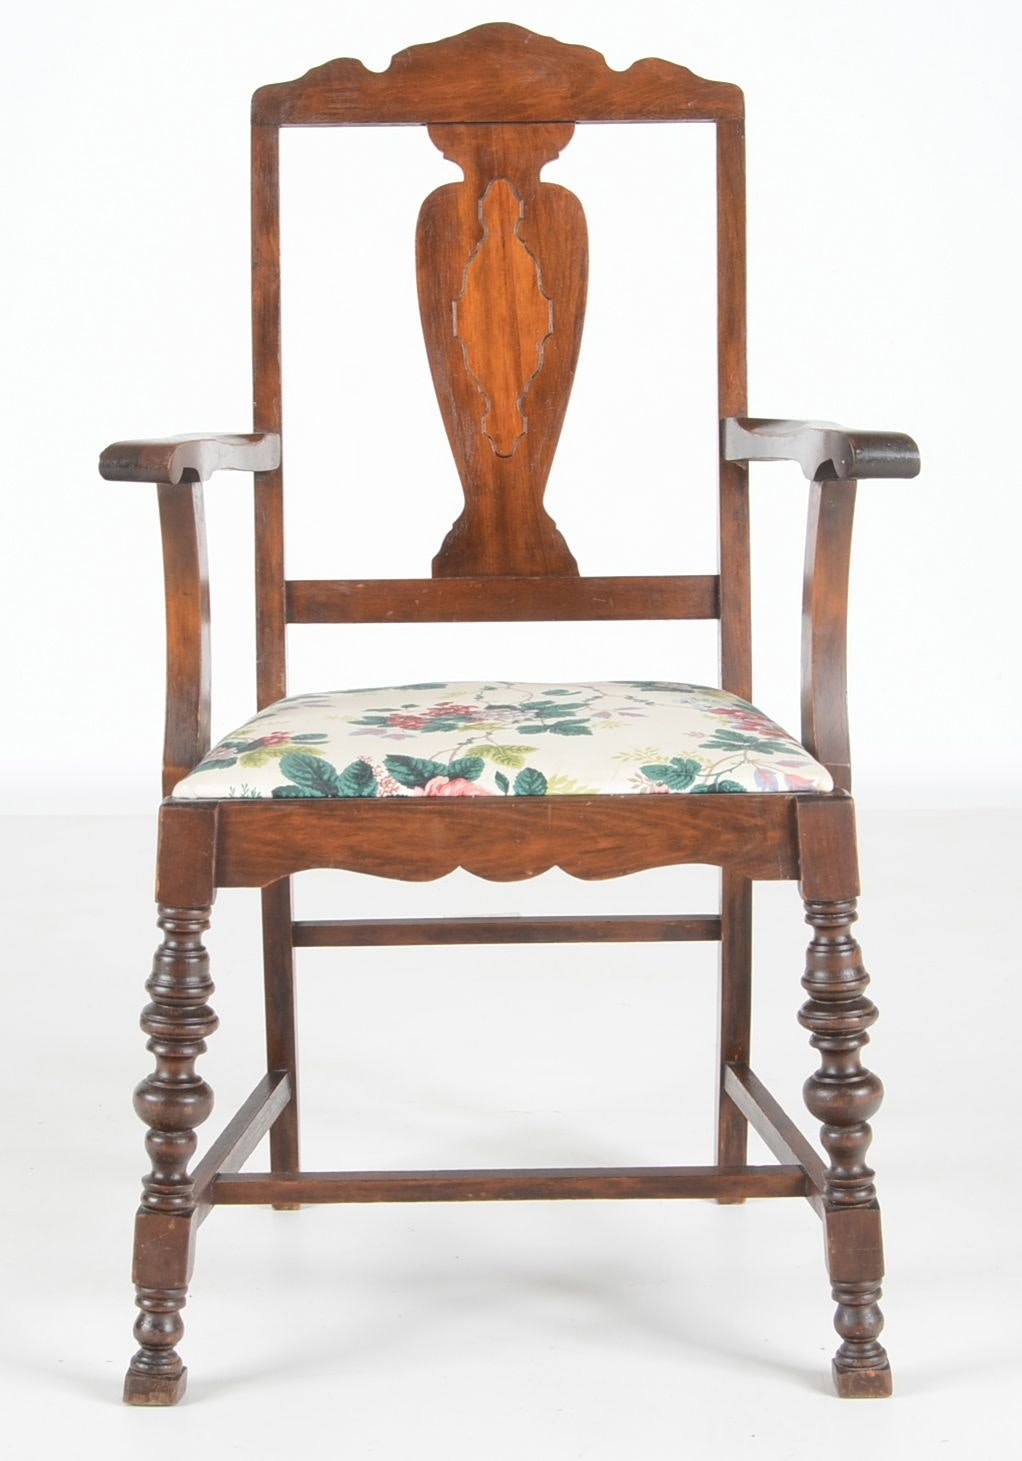 1920s Jacobean Style Dining Table And Chairs Ebth